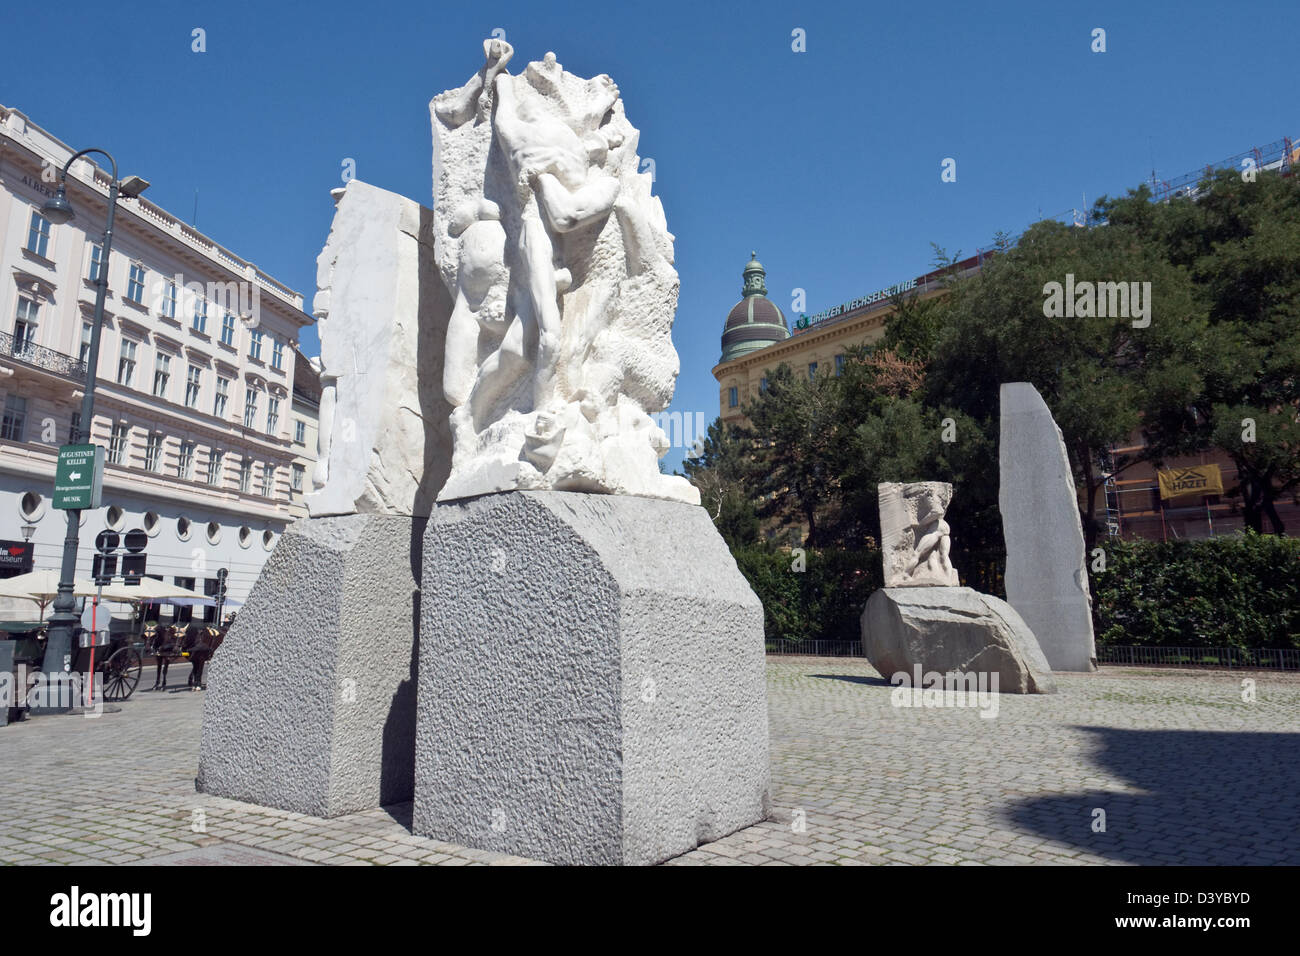 Hrdlicka monument in Vienna Stock Photo